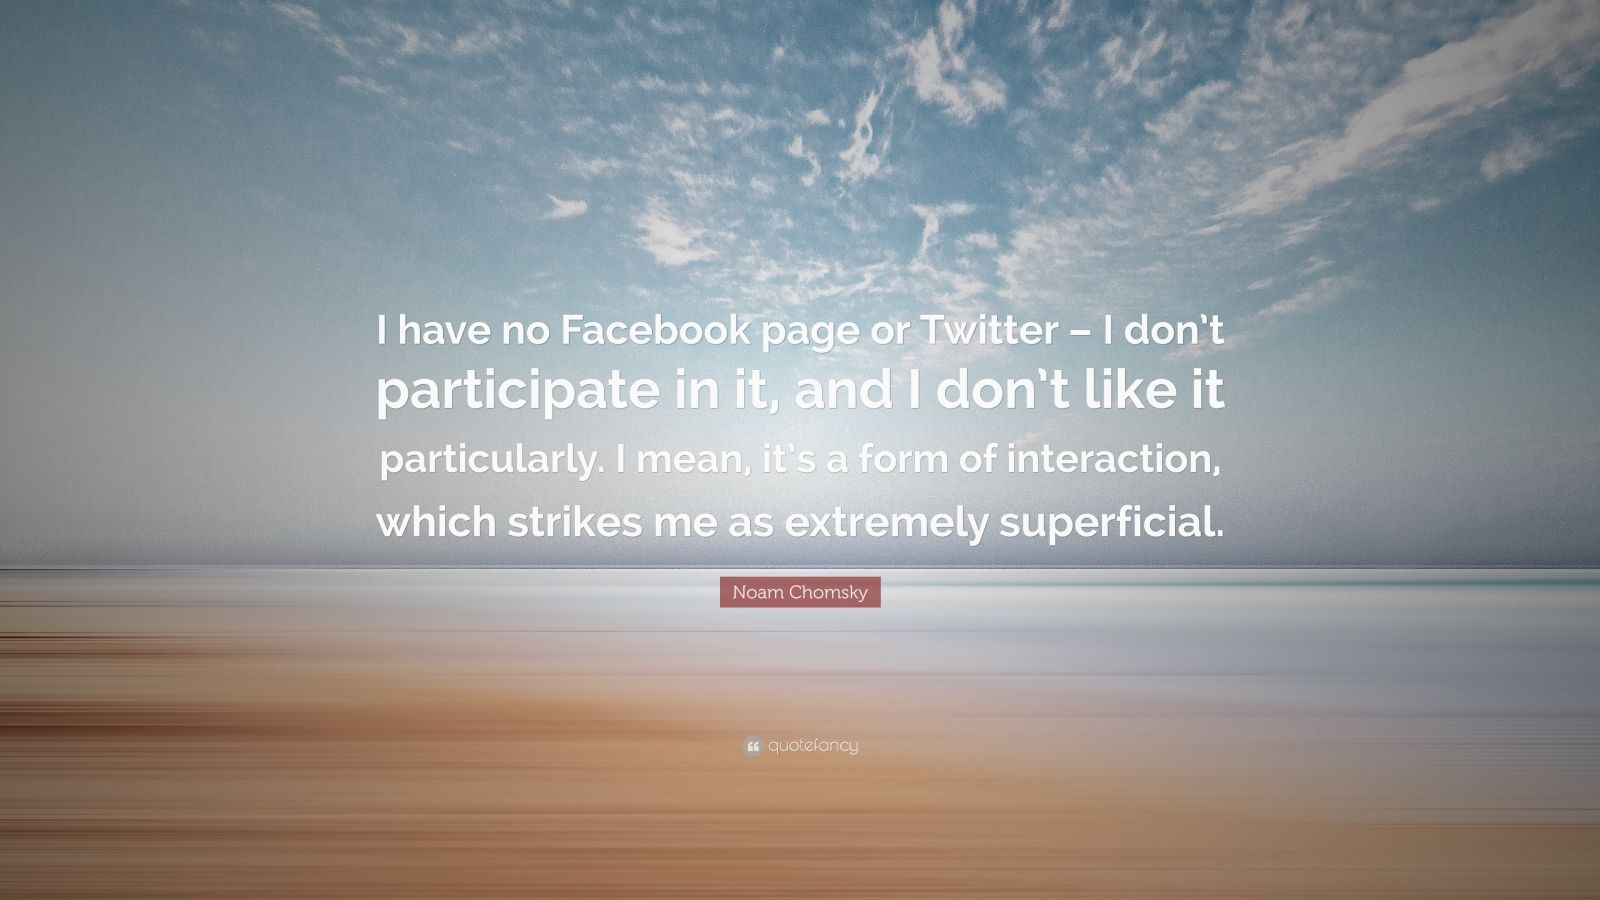 """Noam Chomsky Quote: """"I have no Facebook page or Twitter – I don't participate in it, and I don't like it particularly. I mean, it's a form of interaction, which strikes me as extremely superficial."""""""